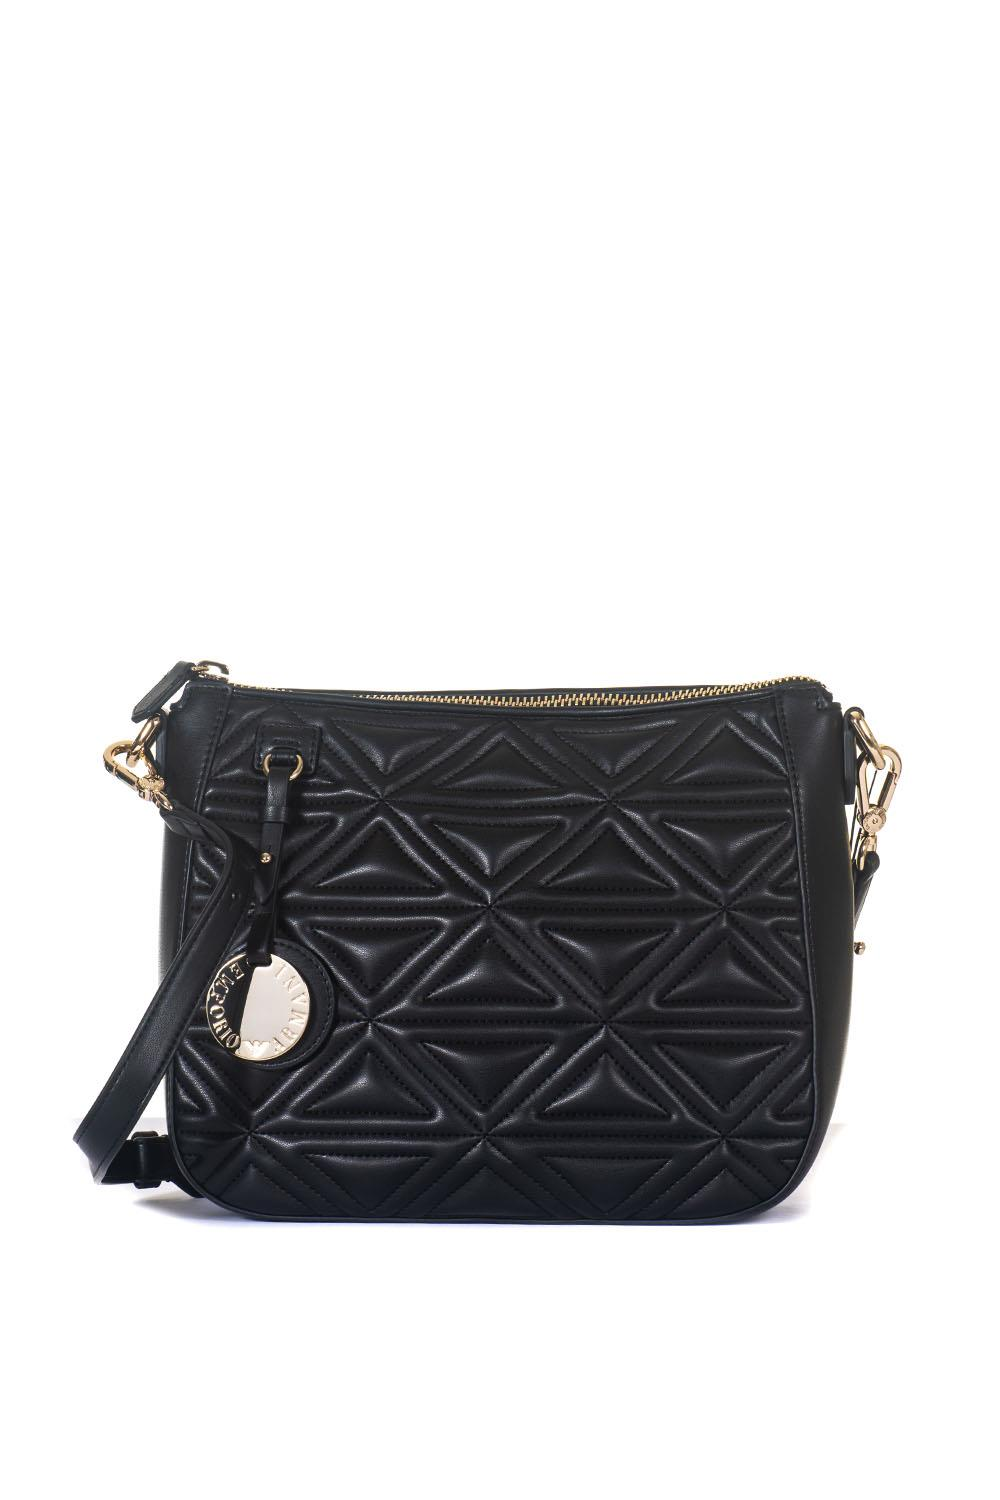 a5890f1d0dee Quilted shoulder strap bag Emporio Armani Colore  nero. Product   Y3E115-YH60A80001 Availability  Sold out